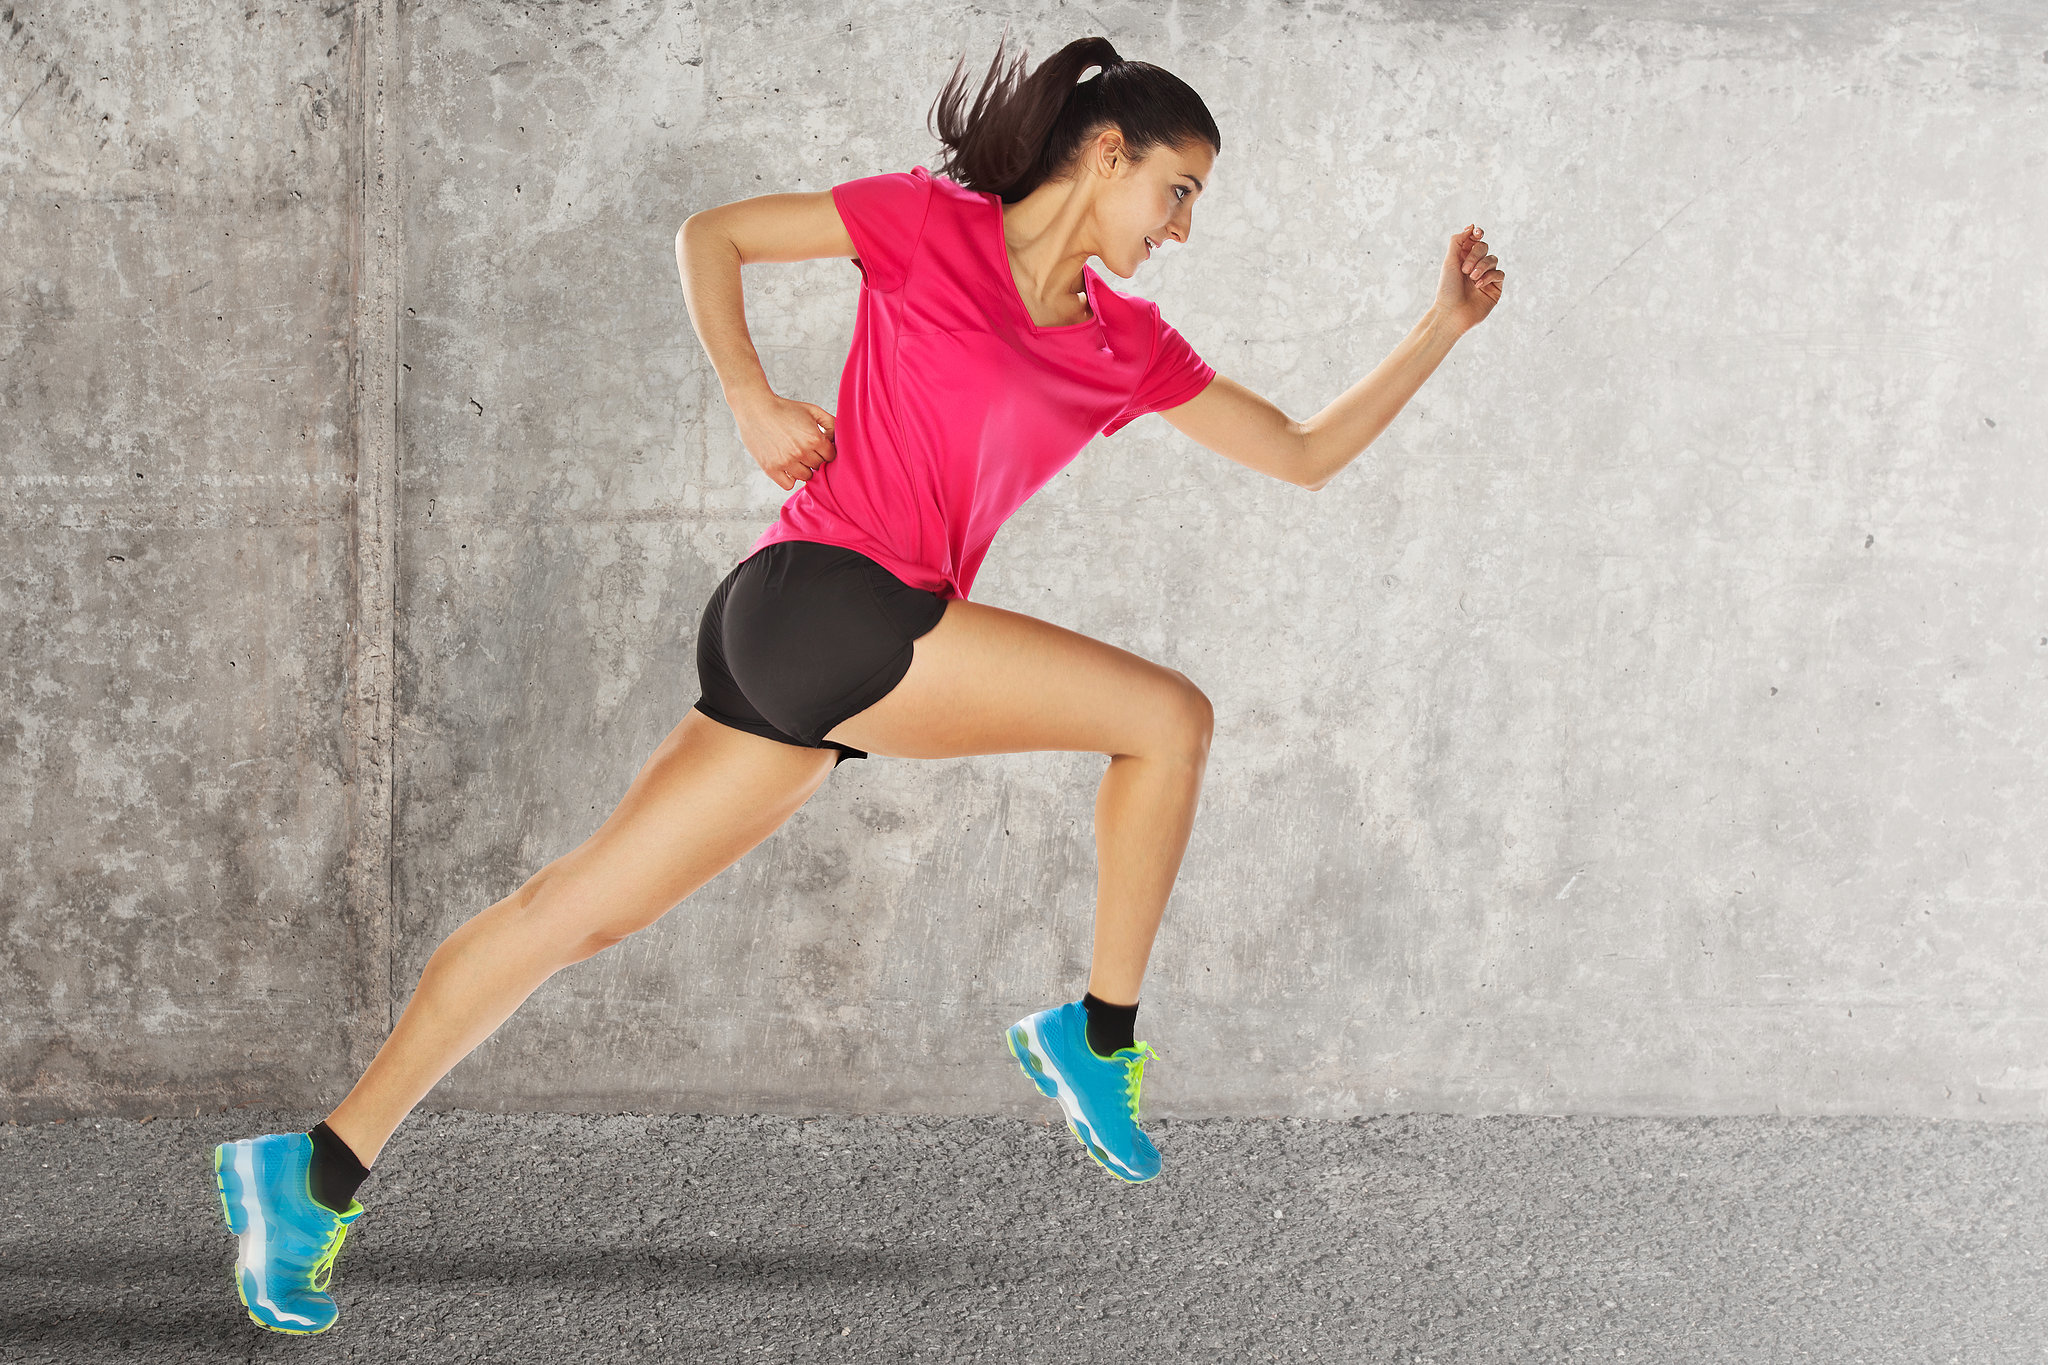 End Your Run With Sprints